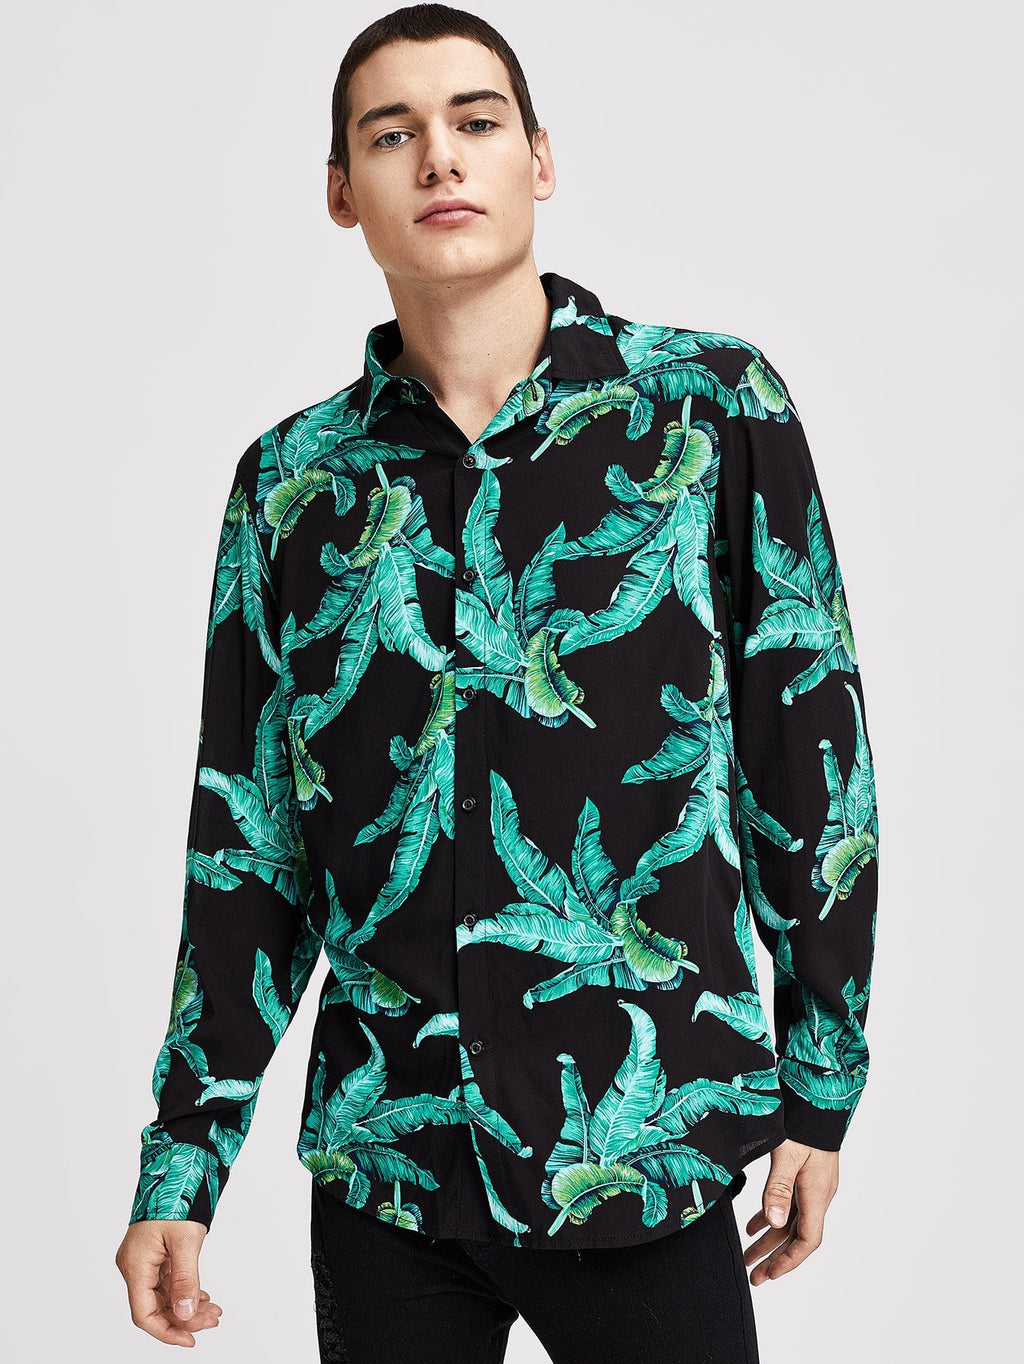 Holiday Shirts For Men - Button Front Plants Print Shirt